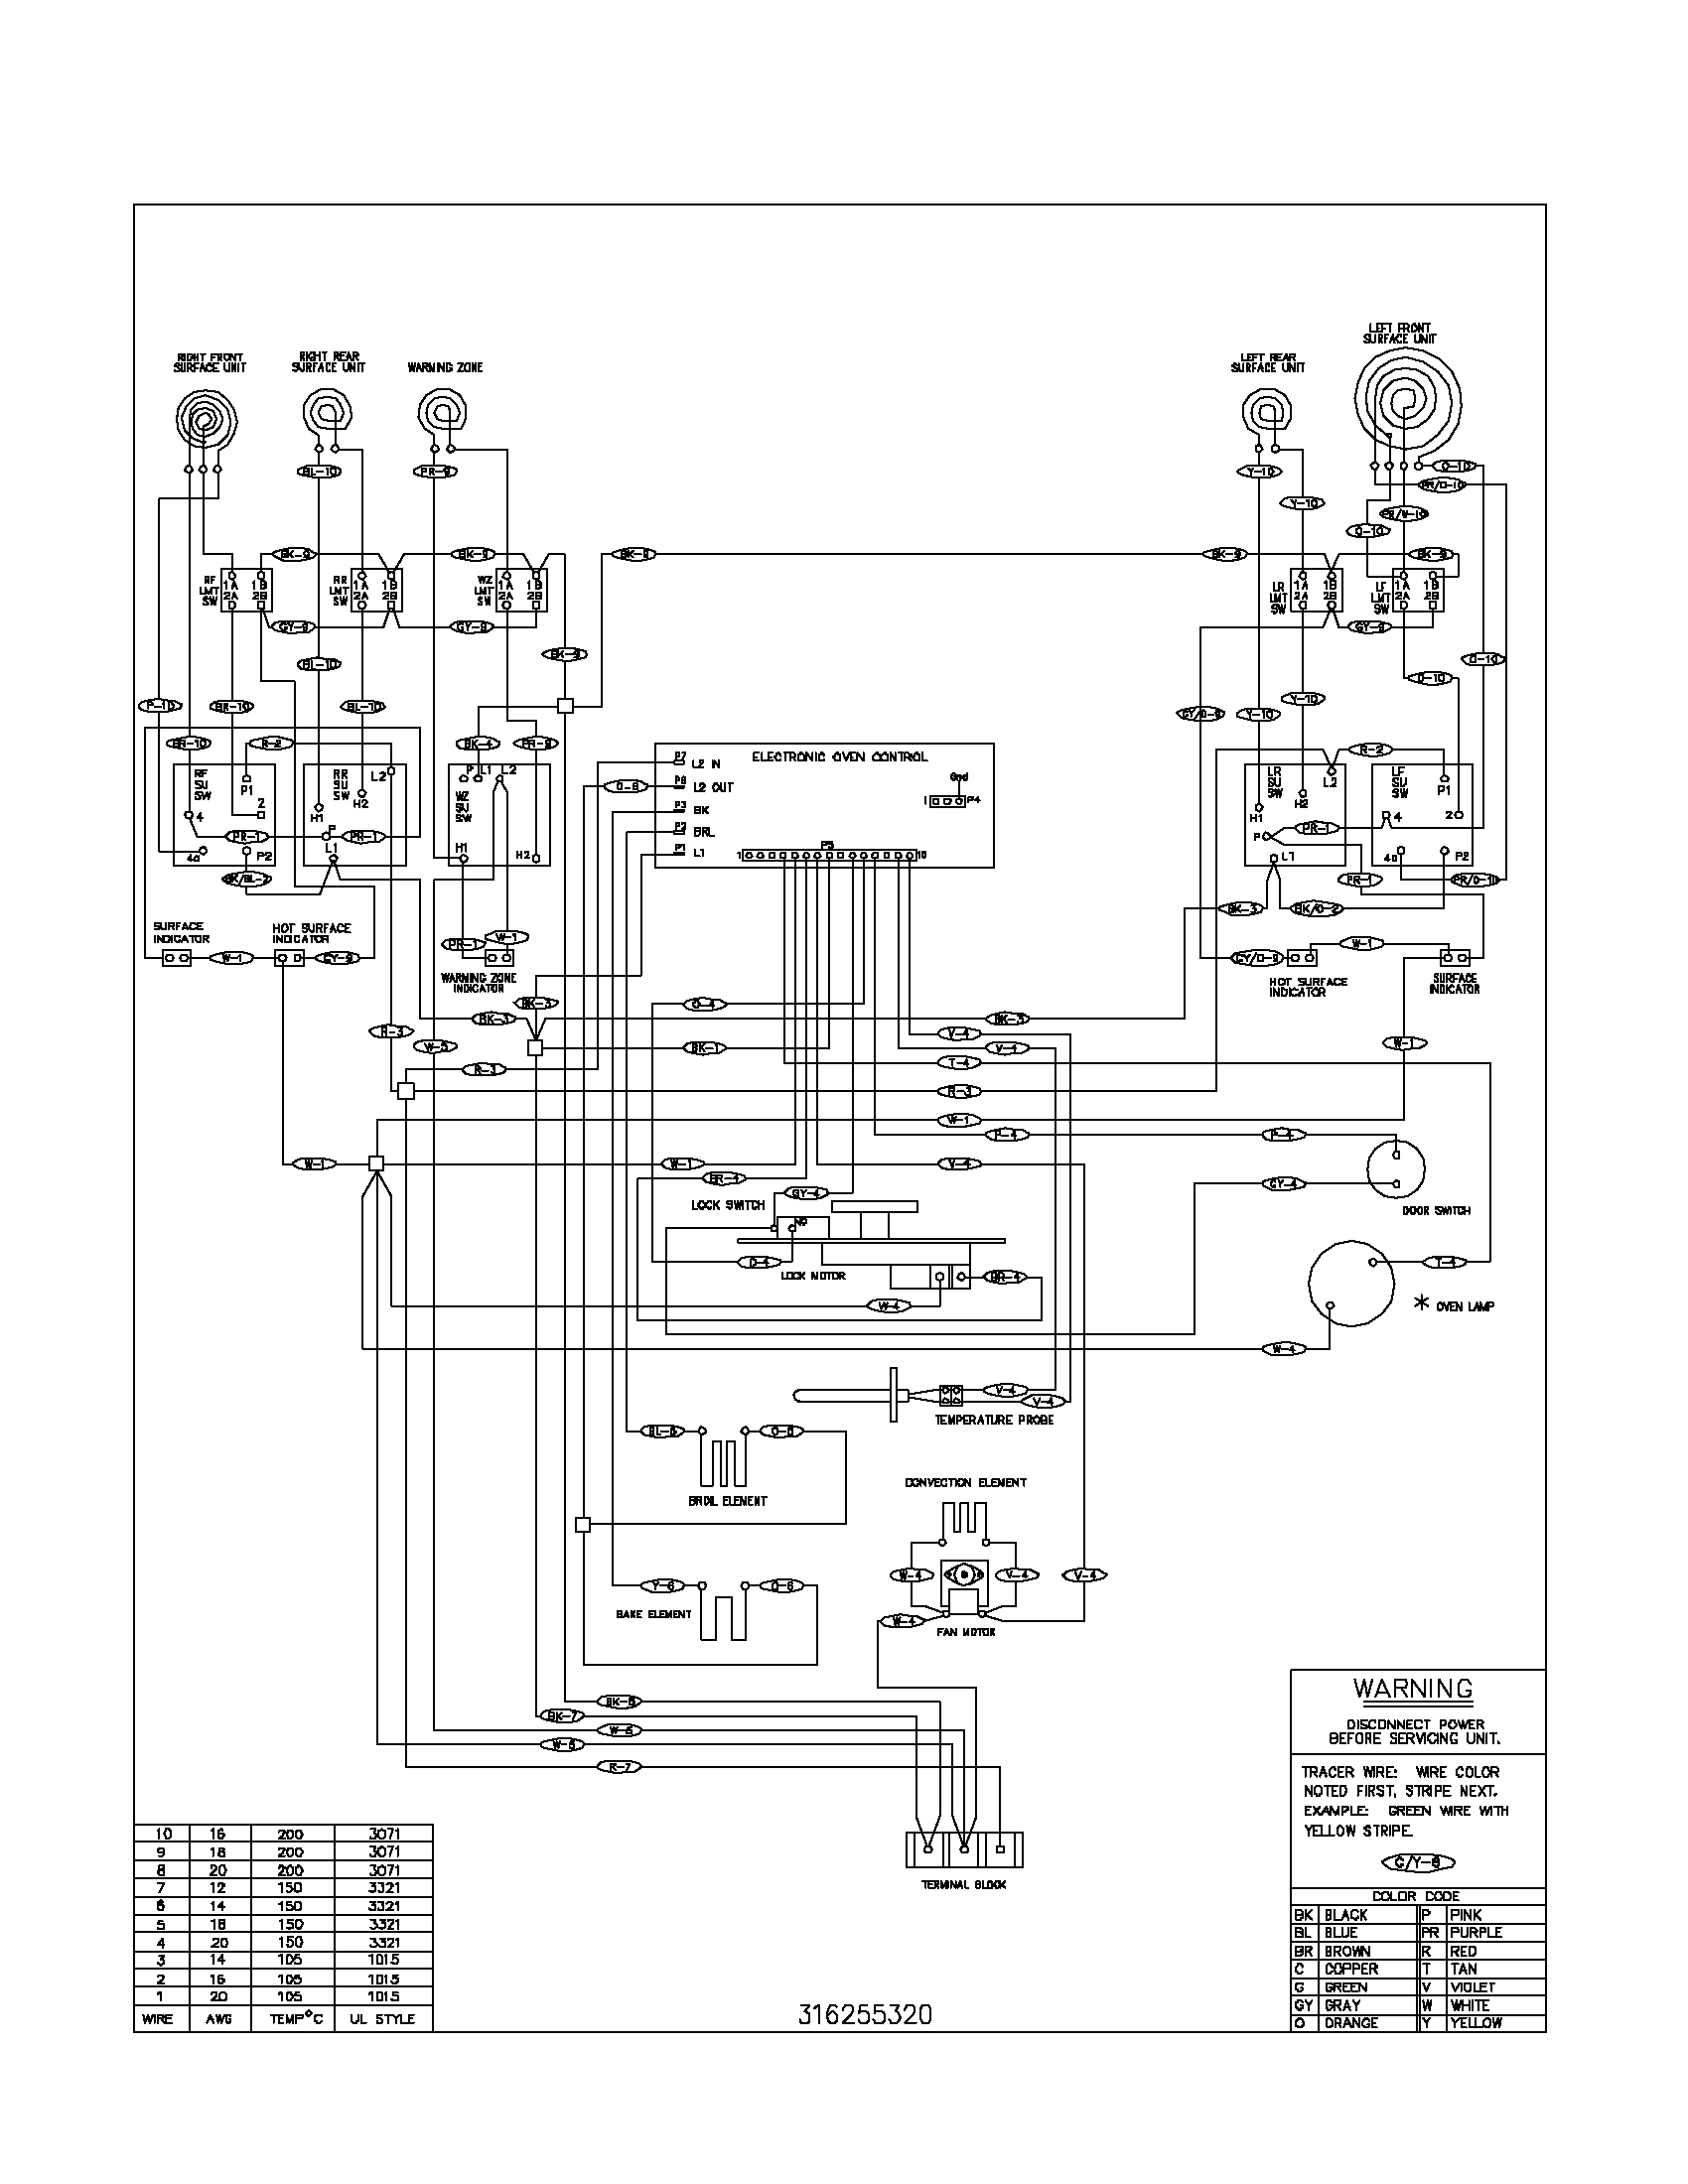 Oven Range Wiring Diagram Wiring Diagram Schemes Electrical Wiring Diagrams  Electric Range Wiring Schematic